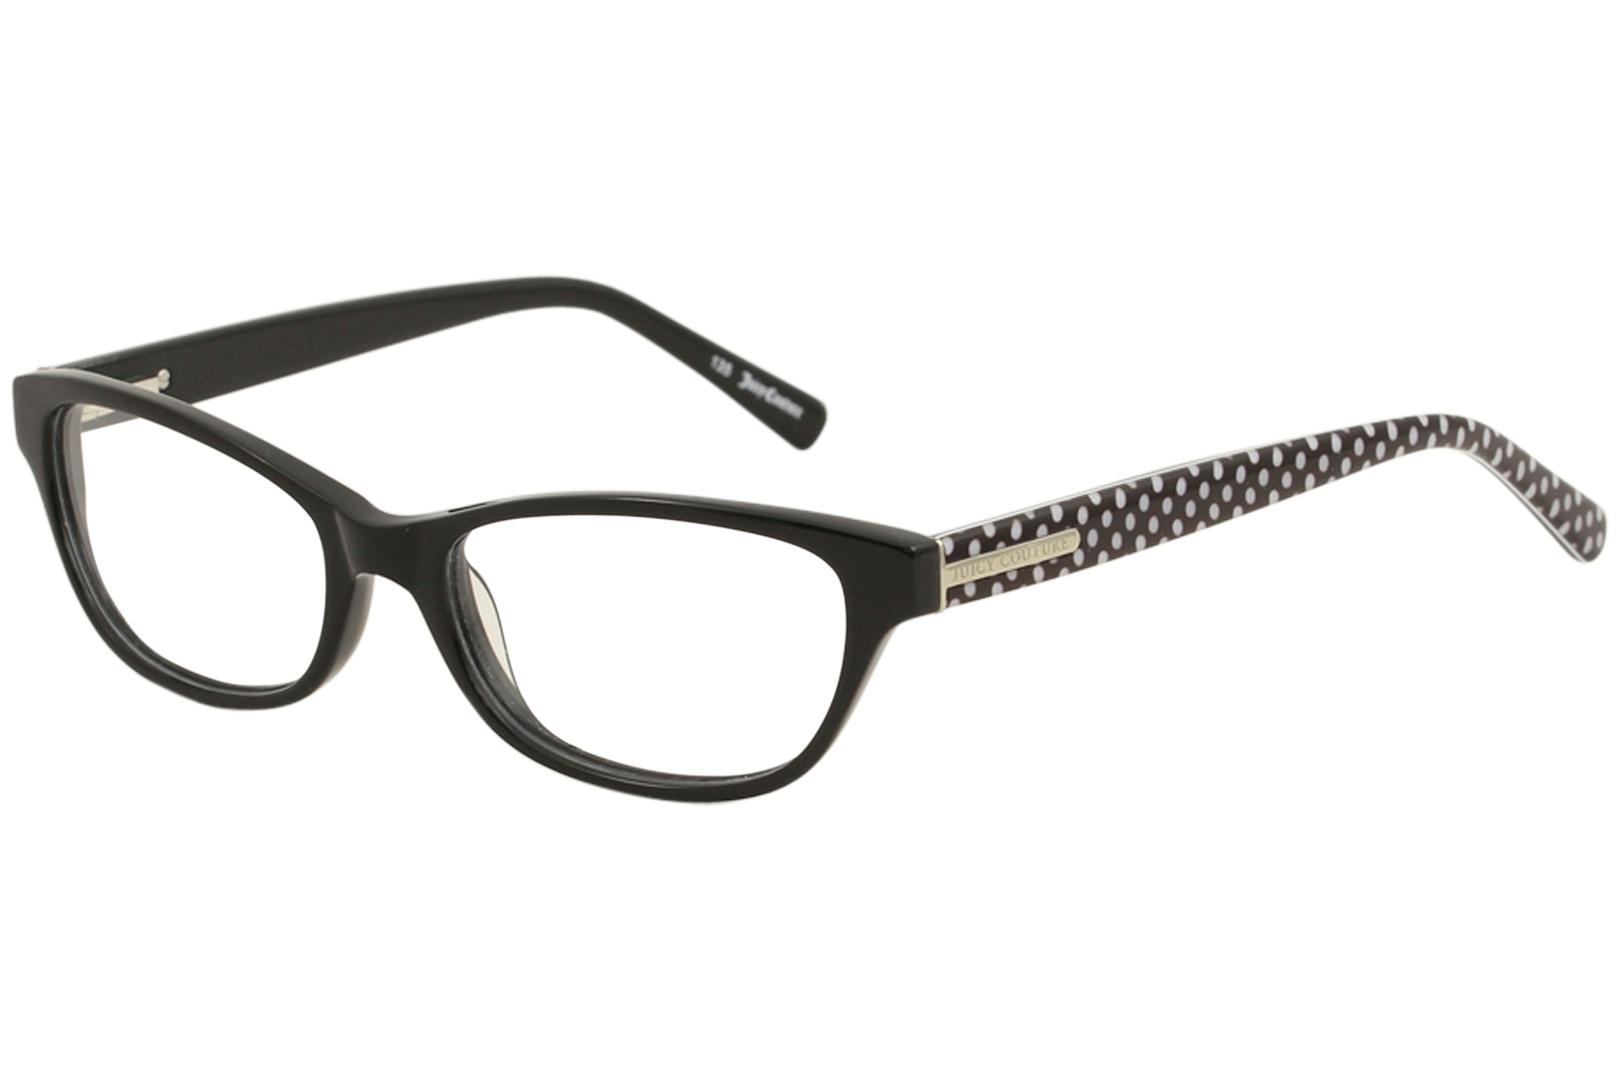 Image of Juicy Couture Women's Eyeglasses JU118 JU/118 Full Rim Optical Frame - Black   0807 - Lens 51 Bridge 16 Temple 135mm